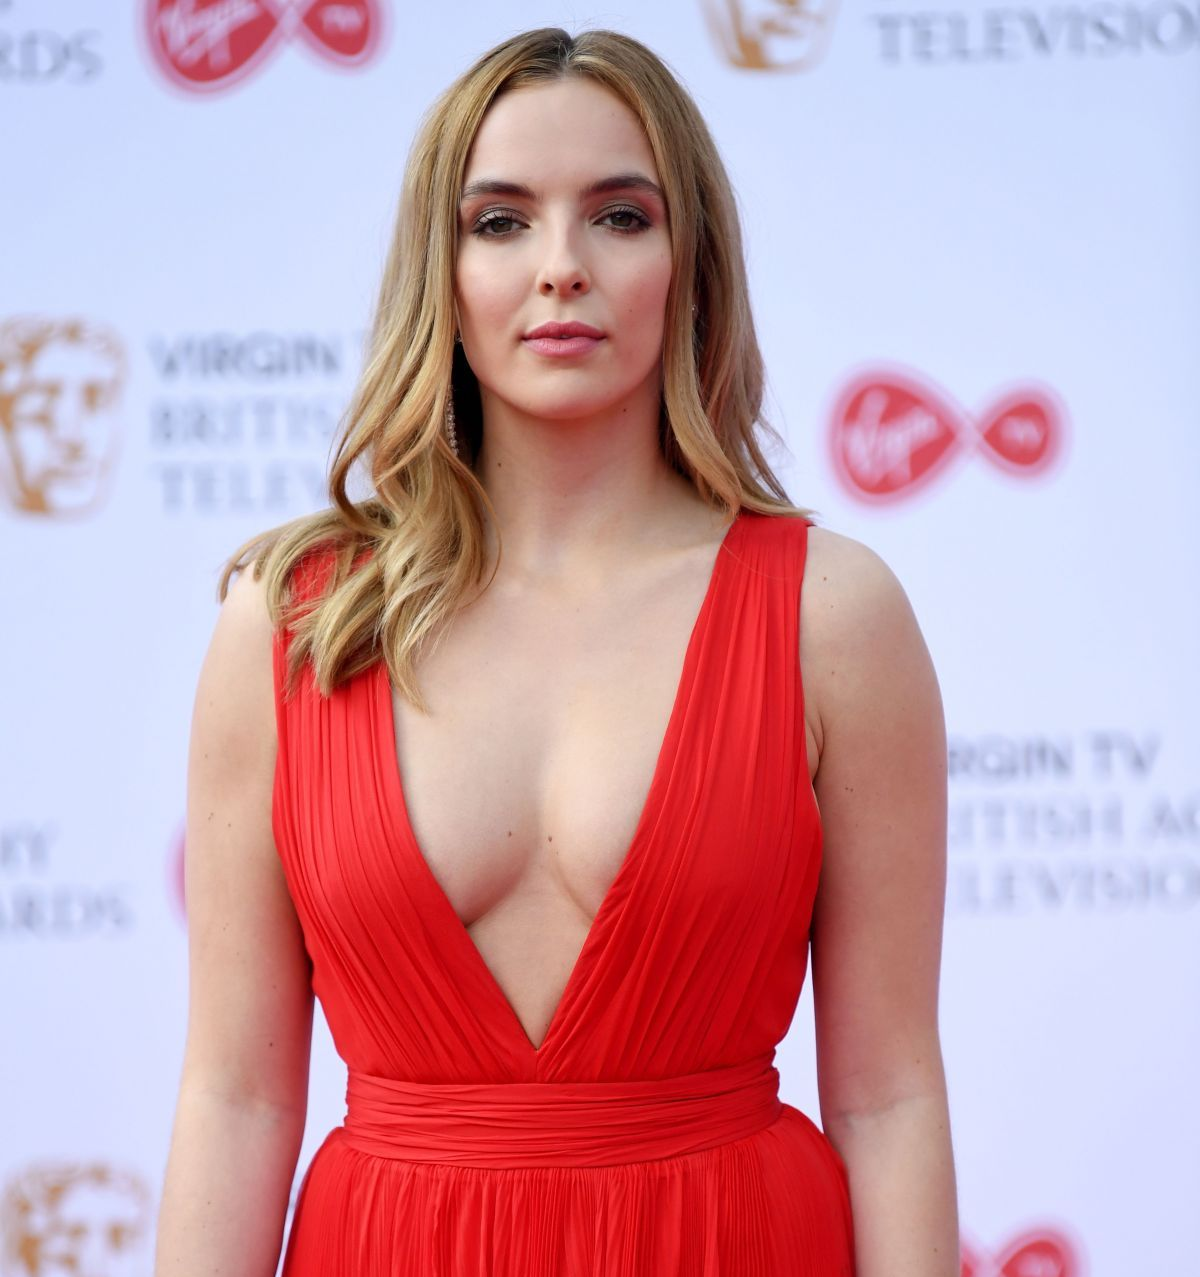 jodie comer at virgin tv bafta television awards in london 140517 1 10 Things You Didn't Know About Killing Eve